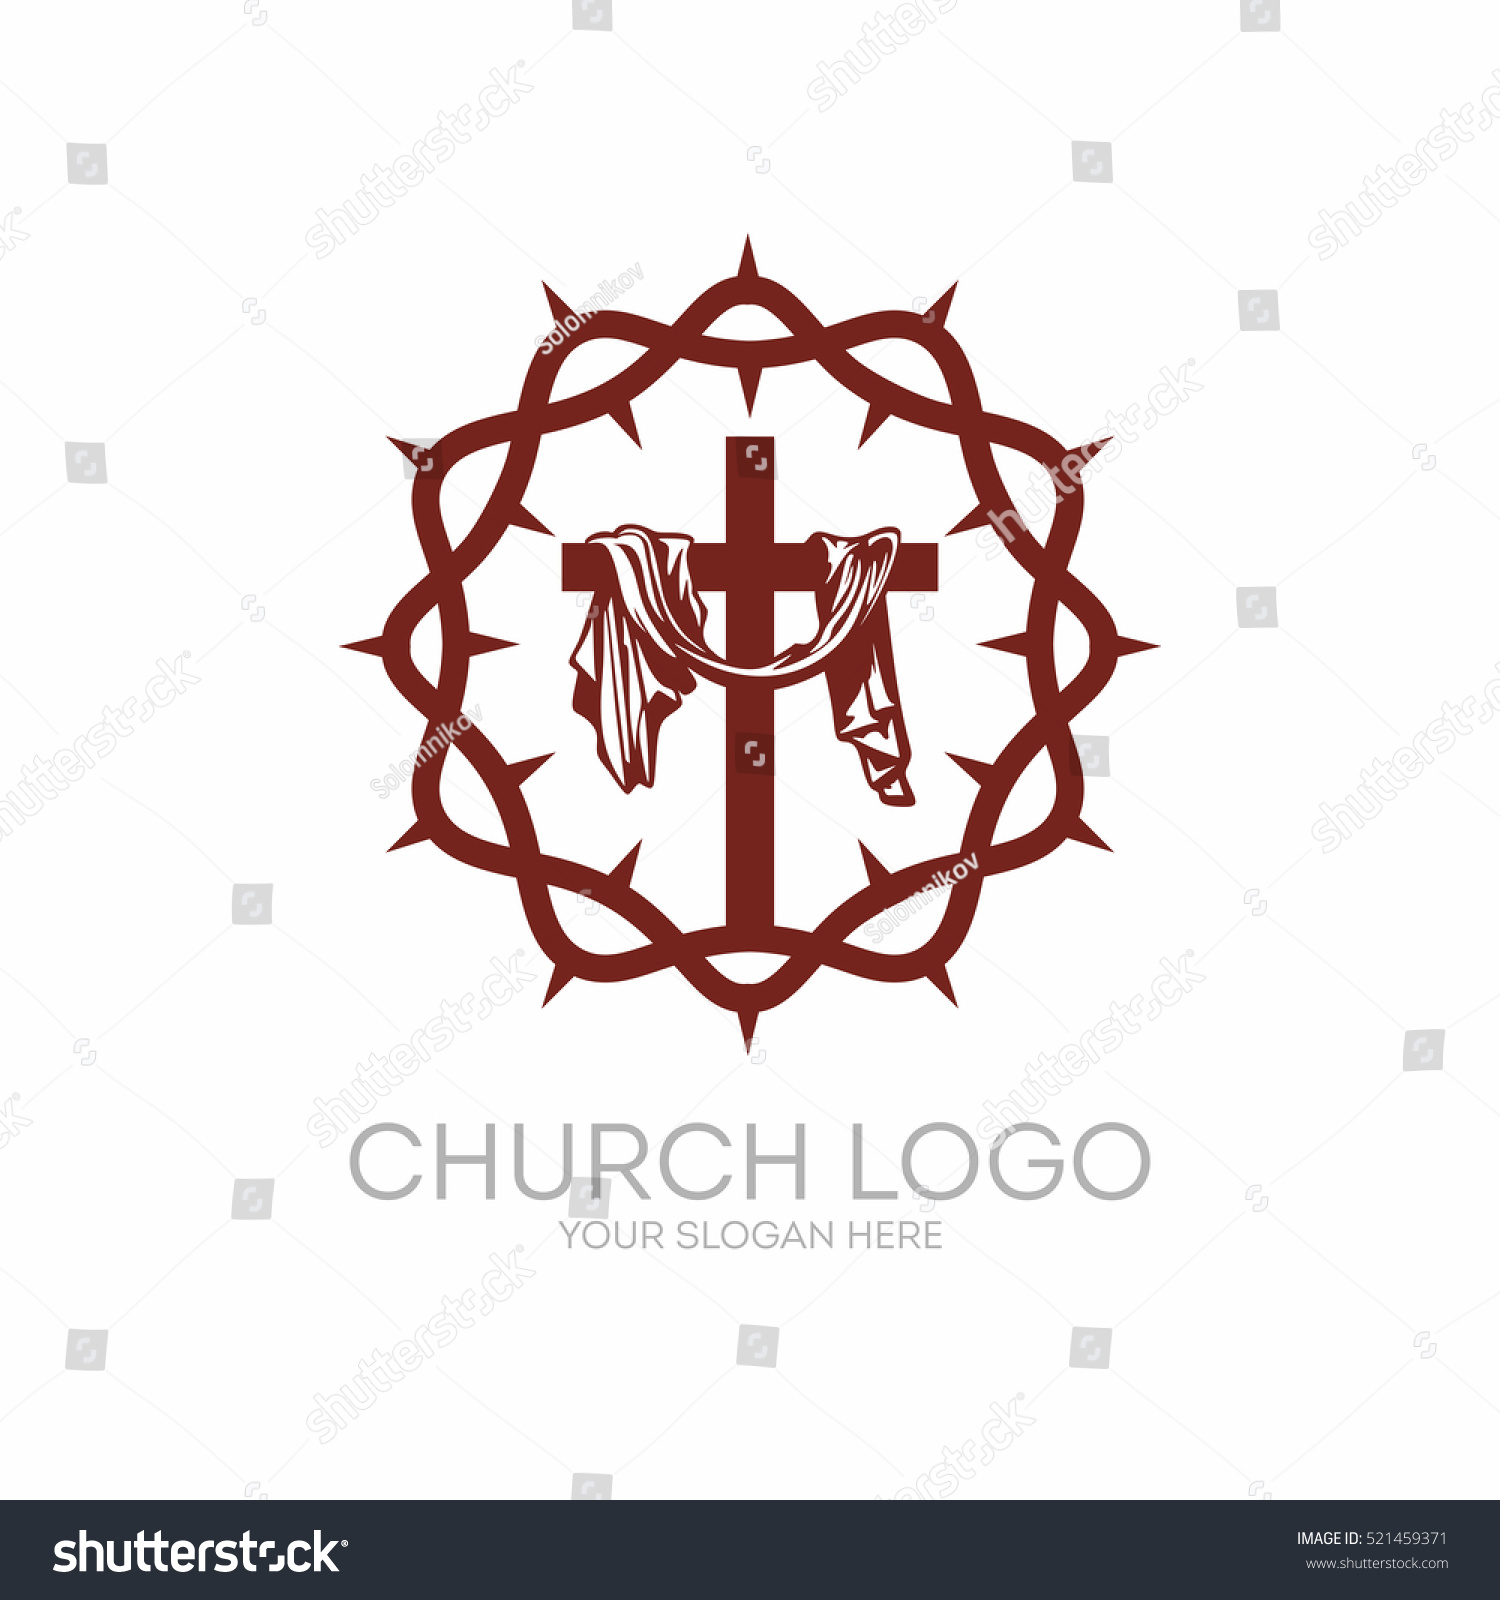 Church logo christian symbols crown thorns stock vector 521459371 christian symbols crown of thorns savior jesus christ and the cross at buycottarizona Gallery